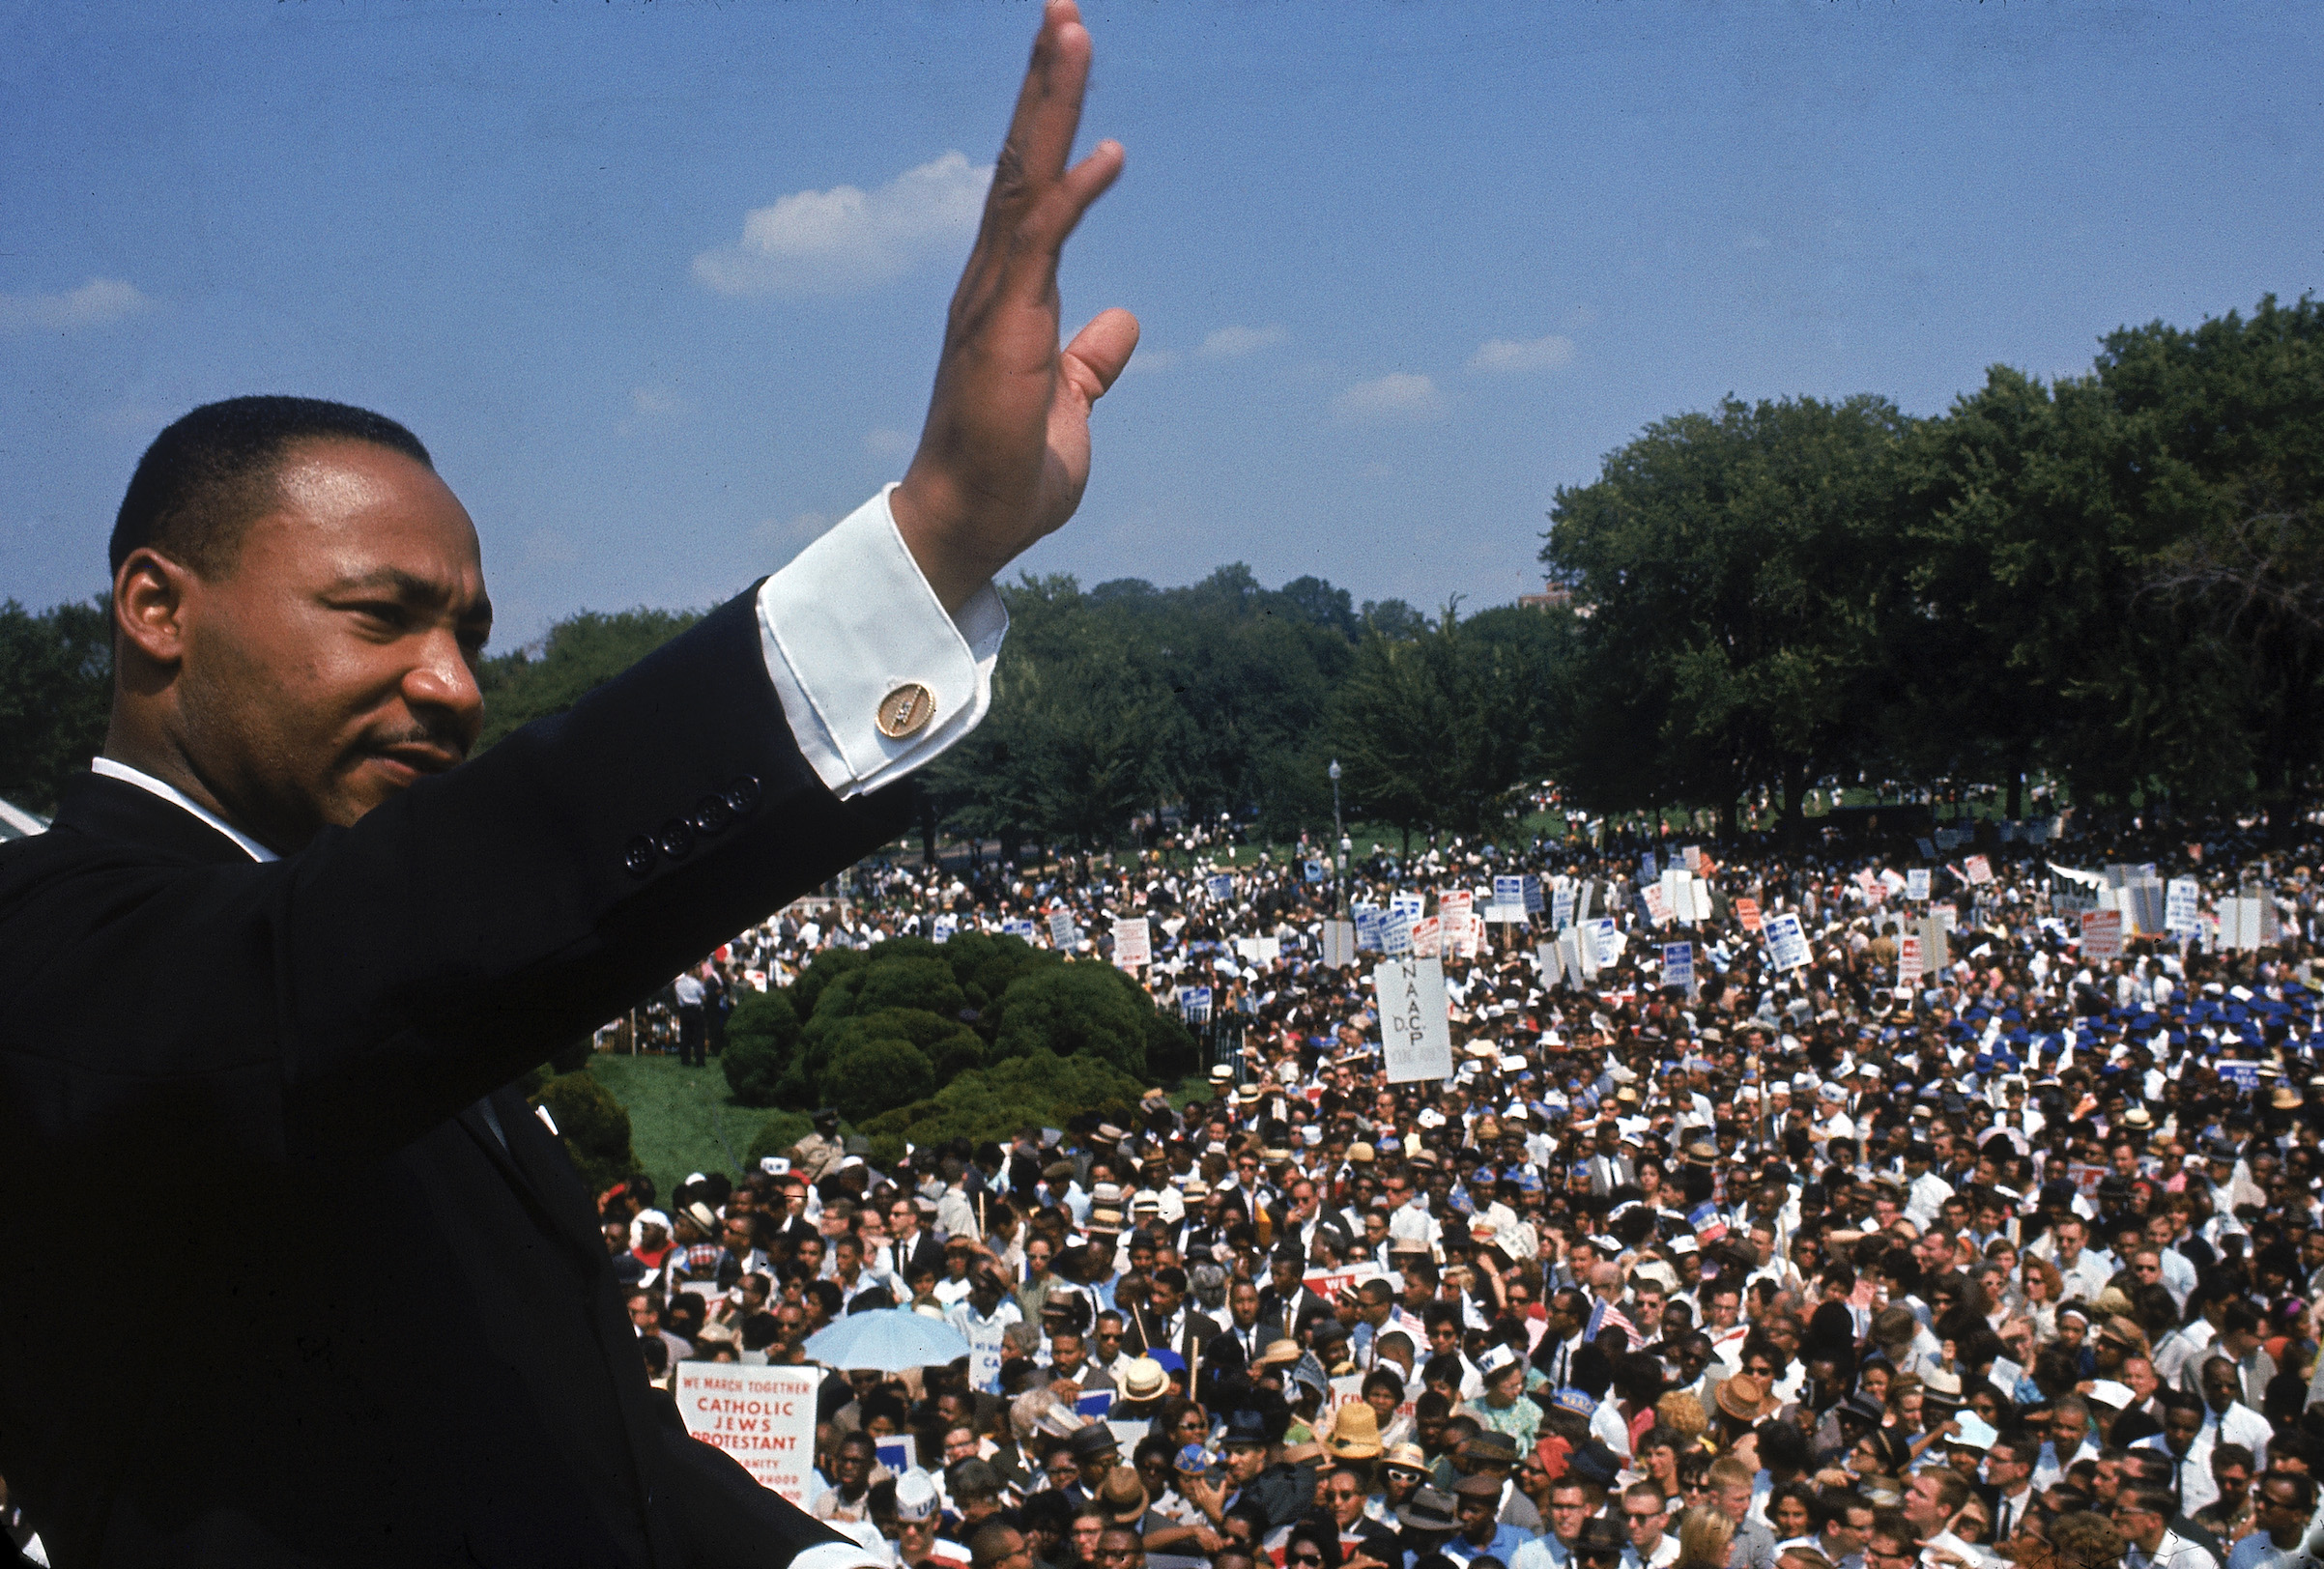 Martin Luther King Jr. addressing crowd of demonstrators outside the Lincoln Memorial during the March on Washington for Jobs and Freedom